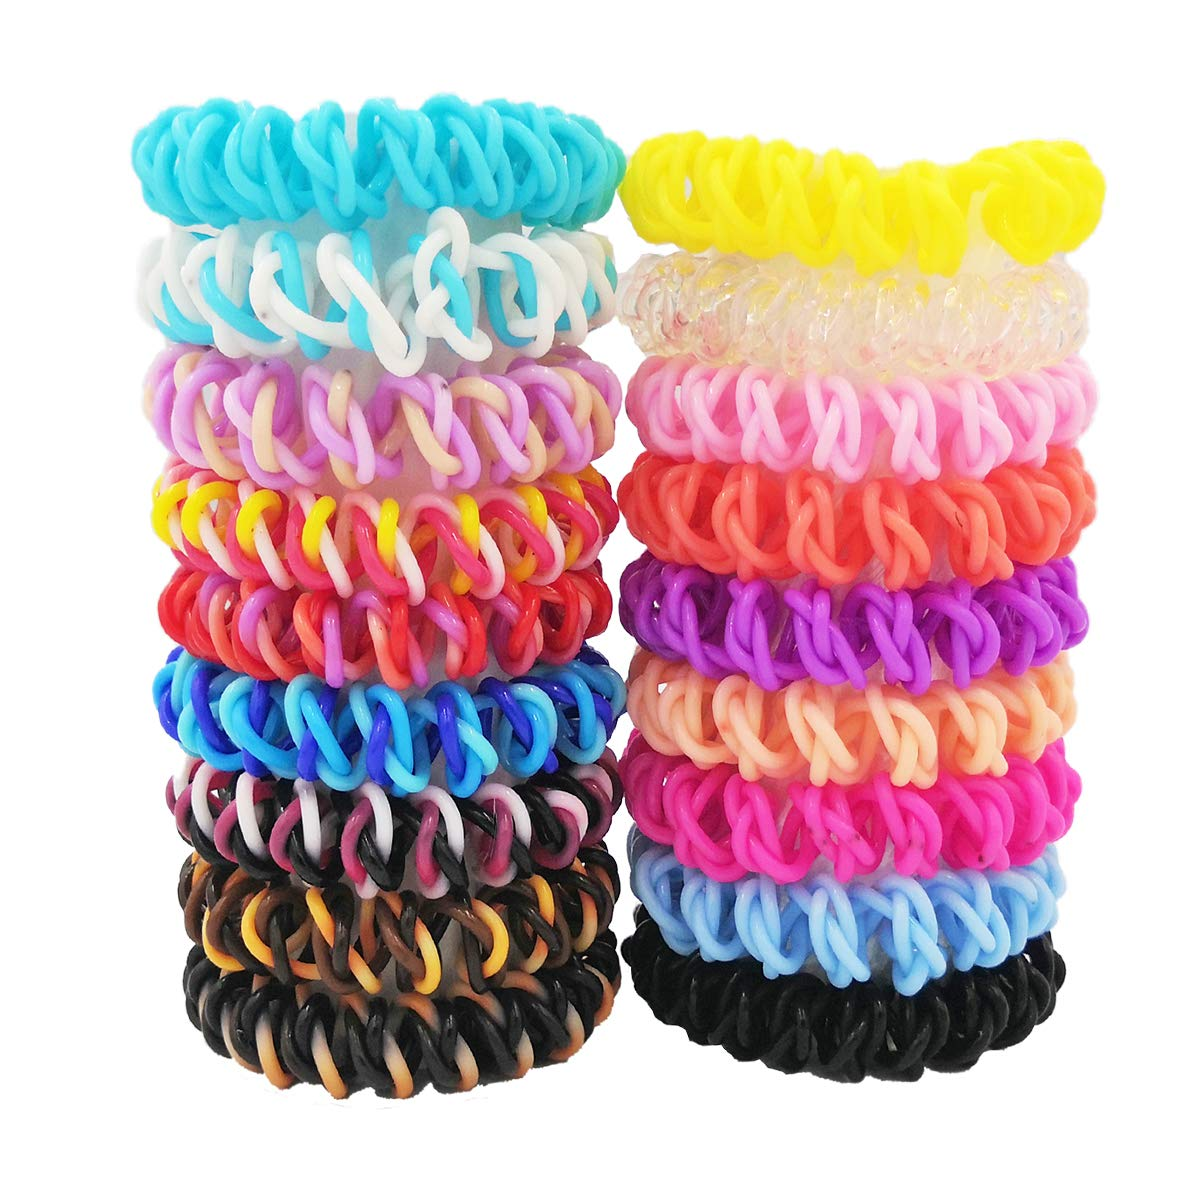 18PCS Spiral Hair Coils No Crease,Traceless Spiral Hair Ties,Phone Cord Hair Ties, Elastic Coil Hair Ties, Spiral Ponytail Holder for Girls Women Teens